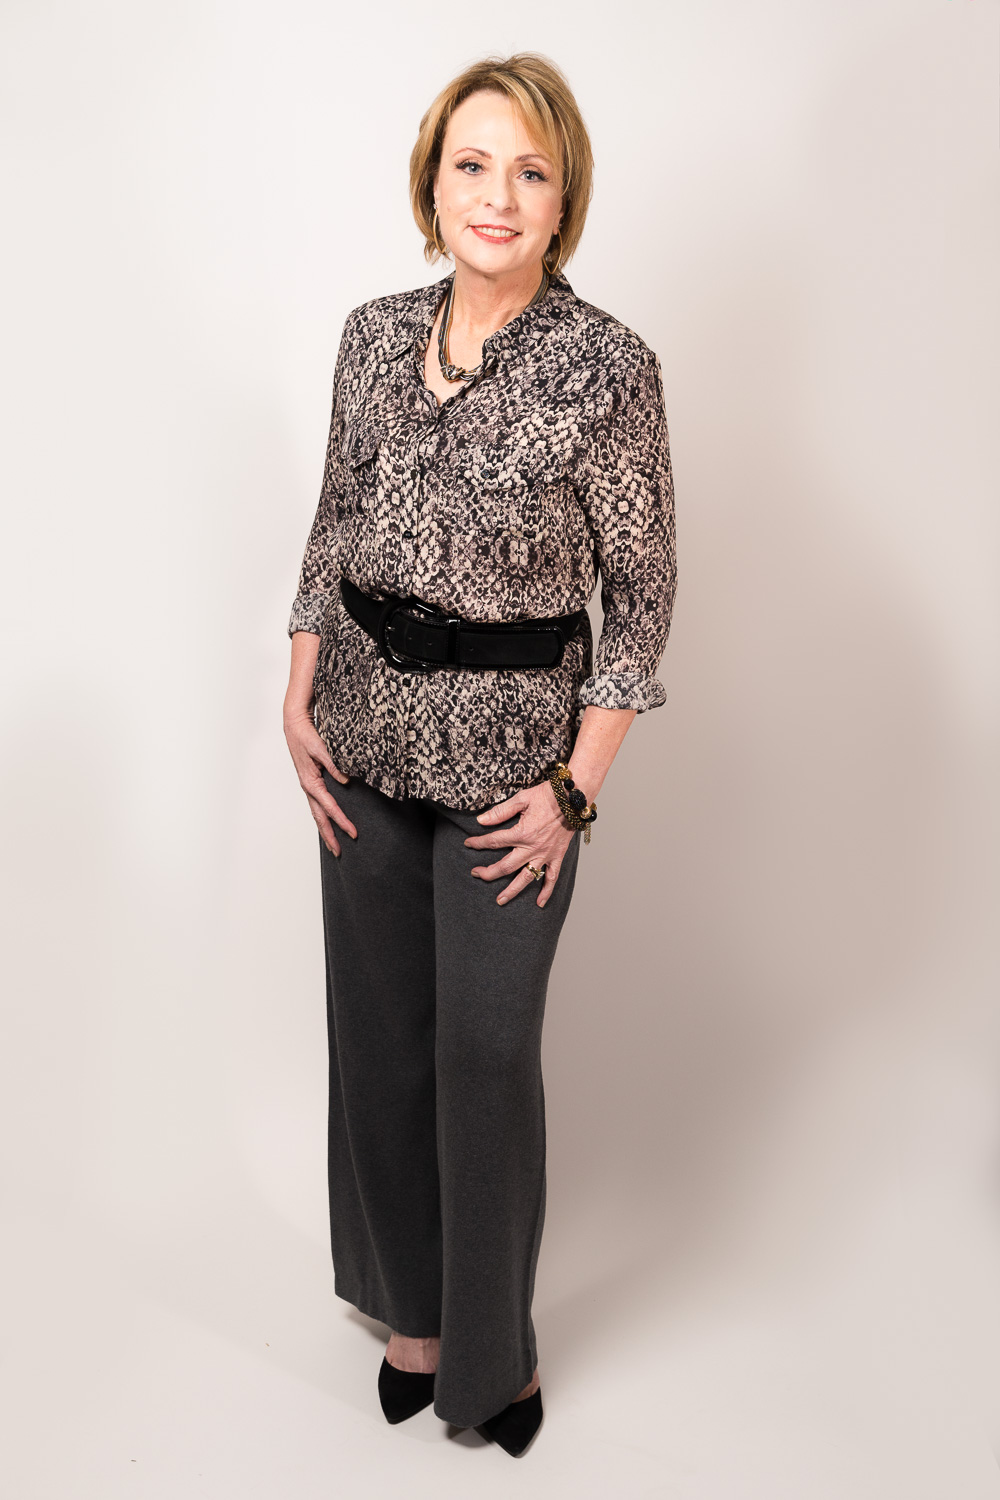 Lori Steiner is styled by Raquel Greer Gordian for a professional occasion in downtown Austin.